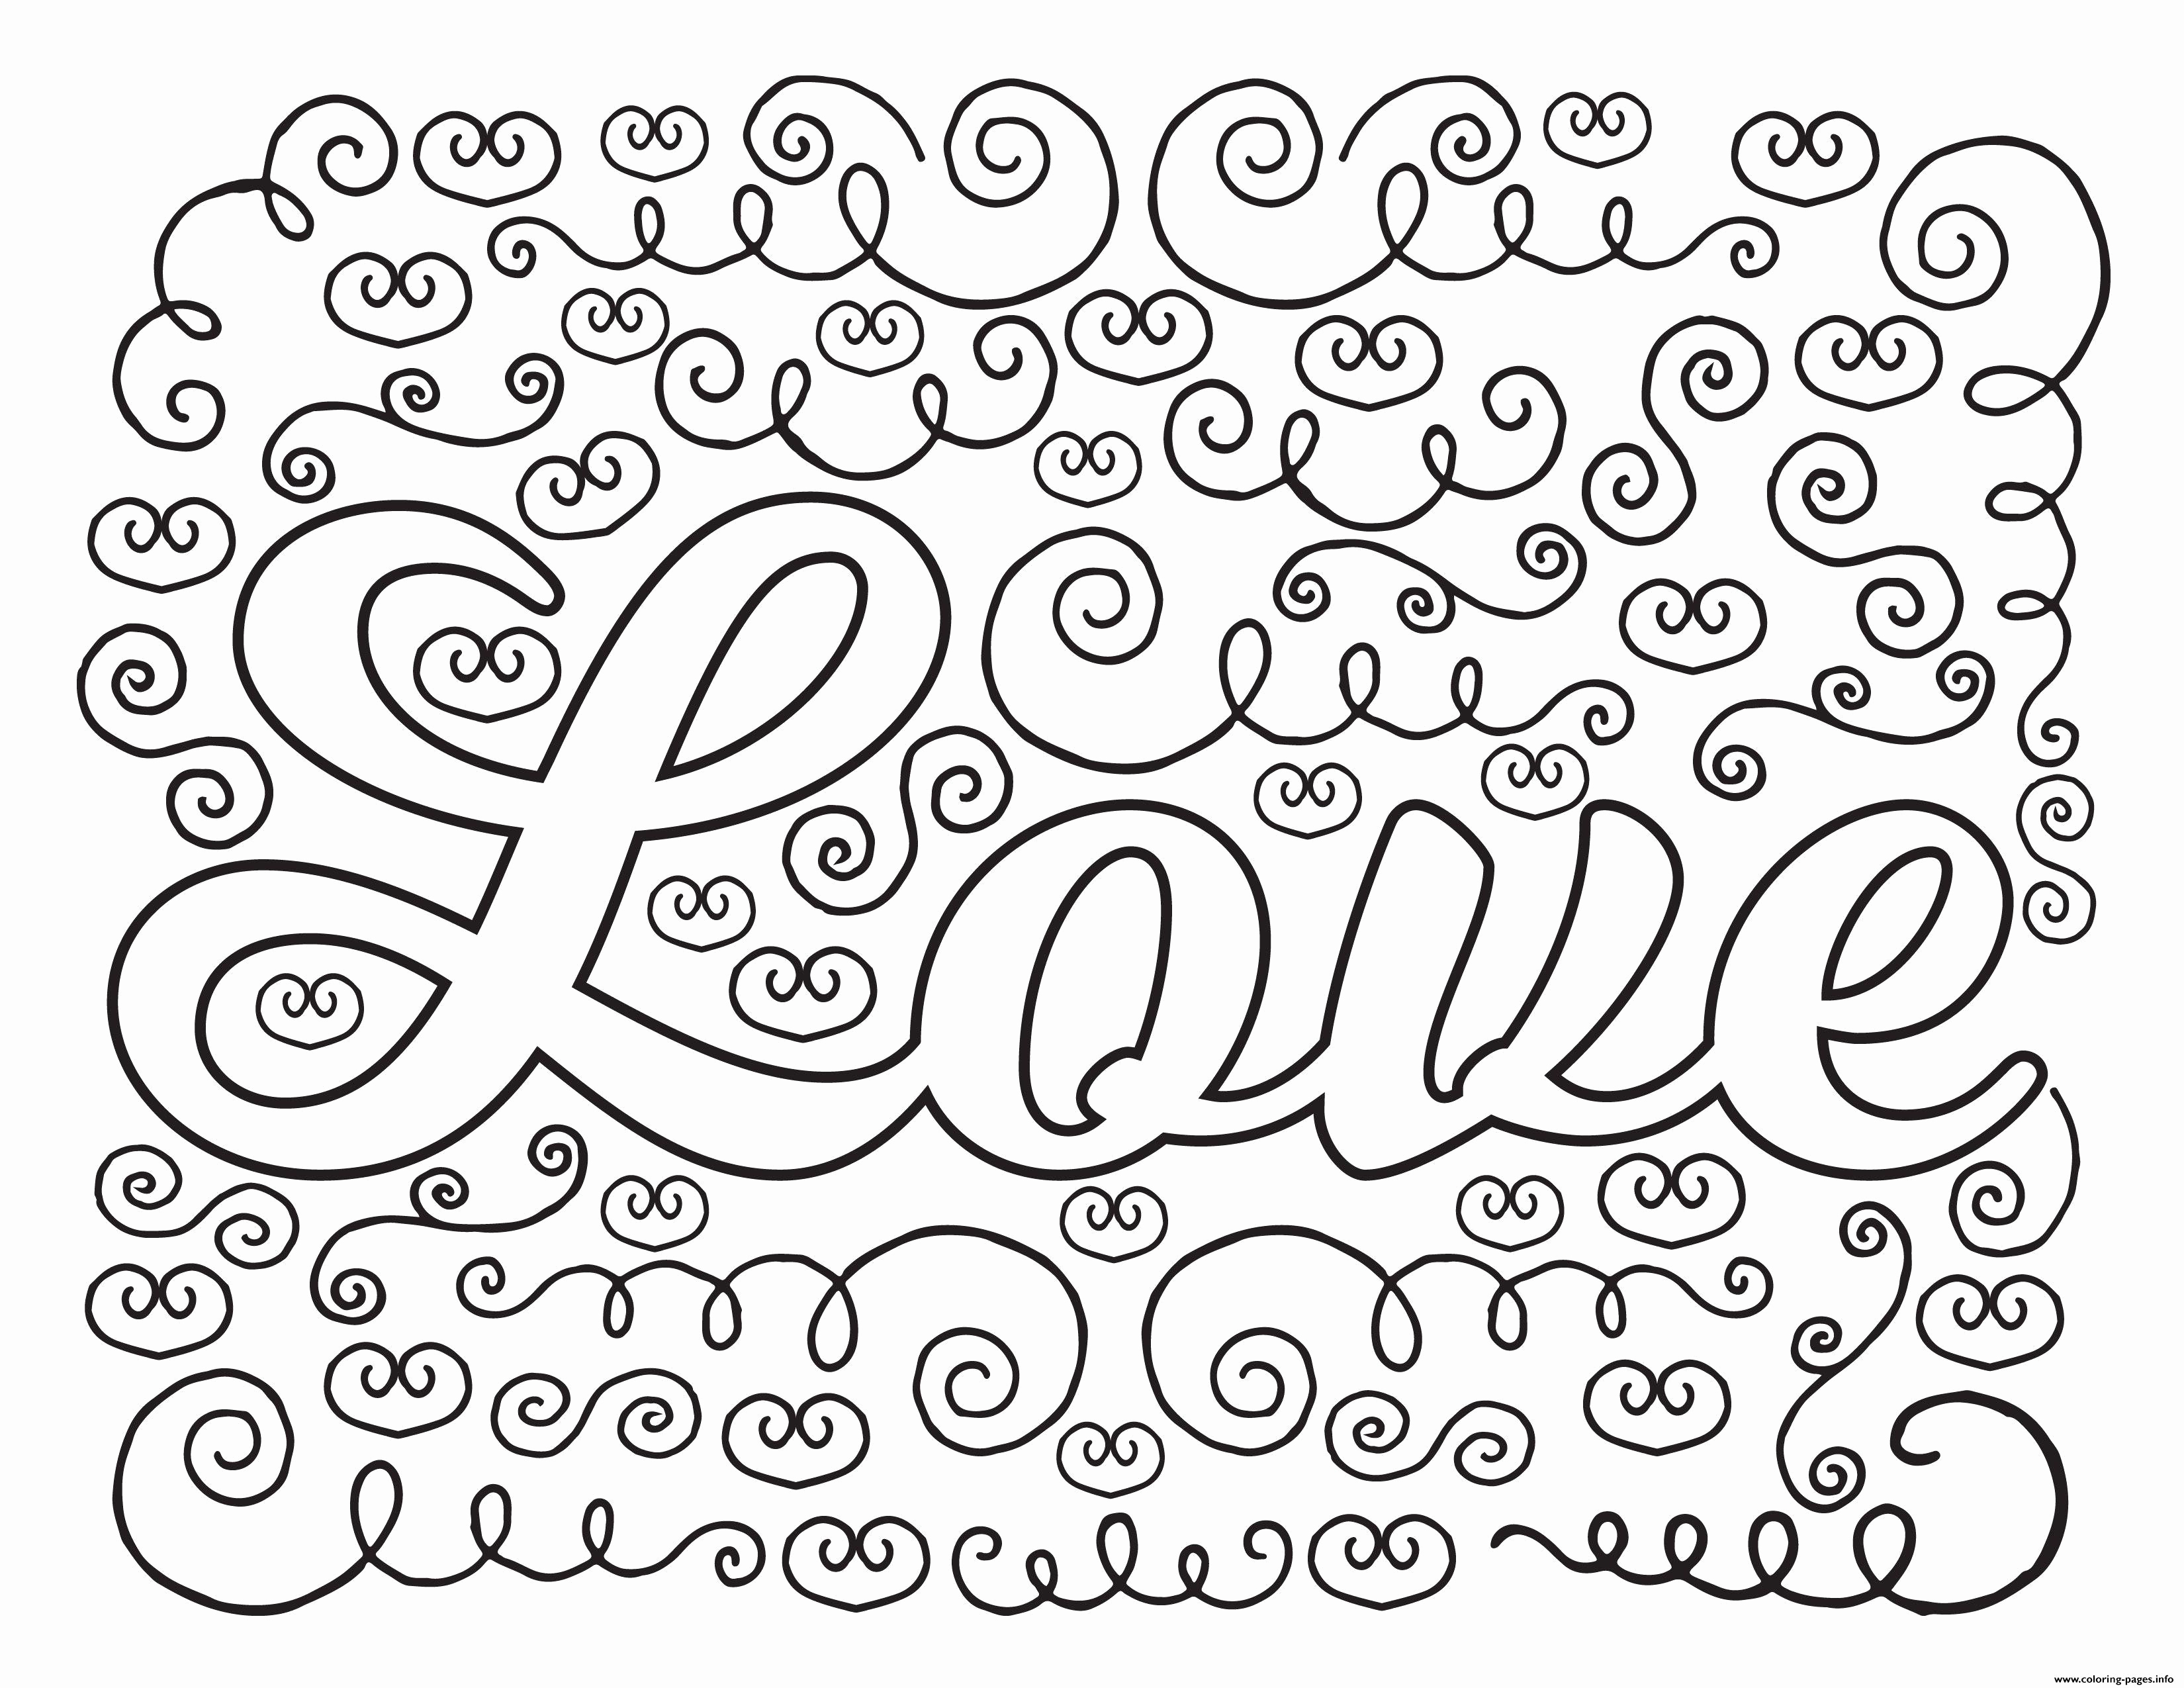 god is love coloring pages Download-God is Love Coloring Pages Awesome Coloring Pages I Love God Best Love Coloring Pages for 11-h